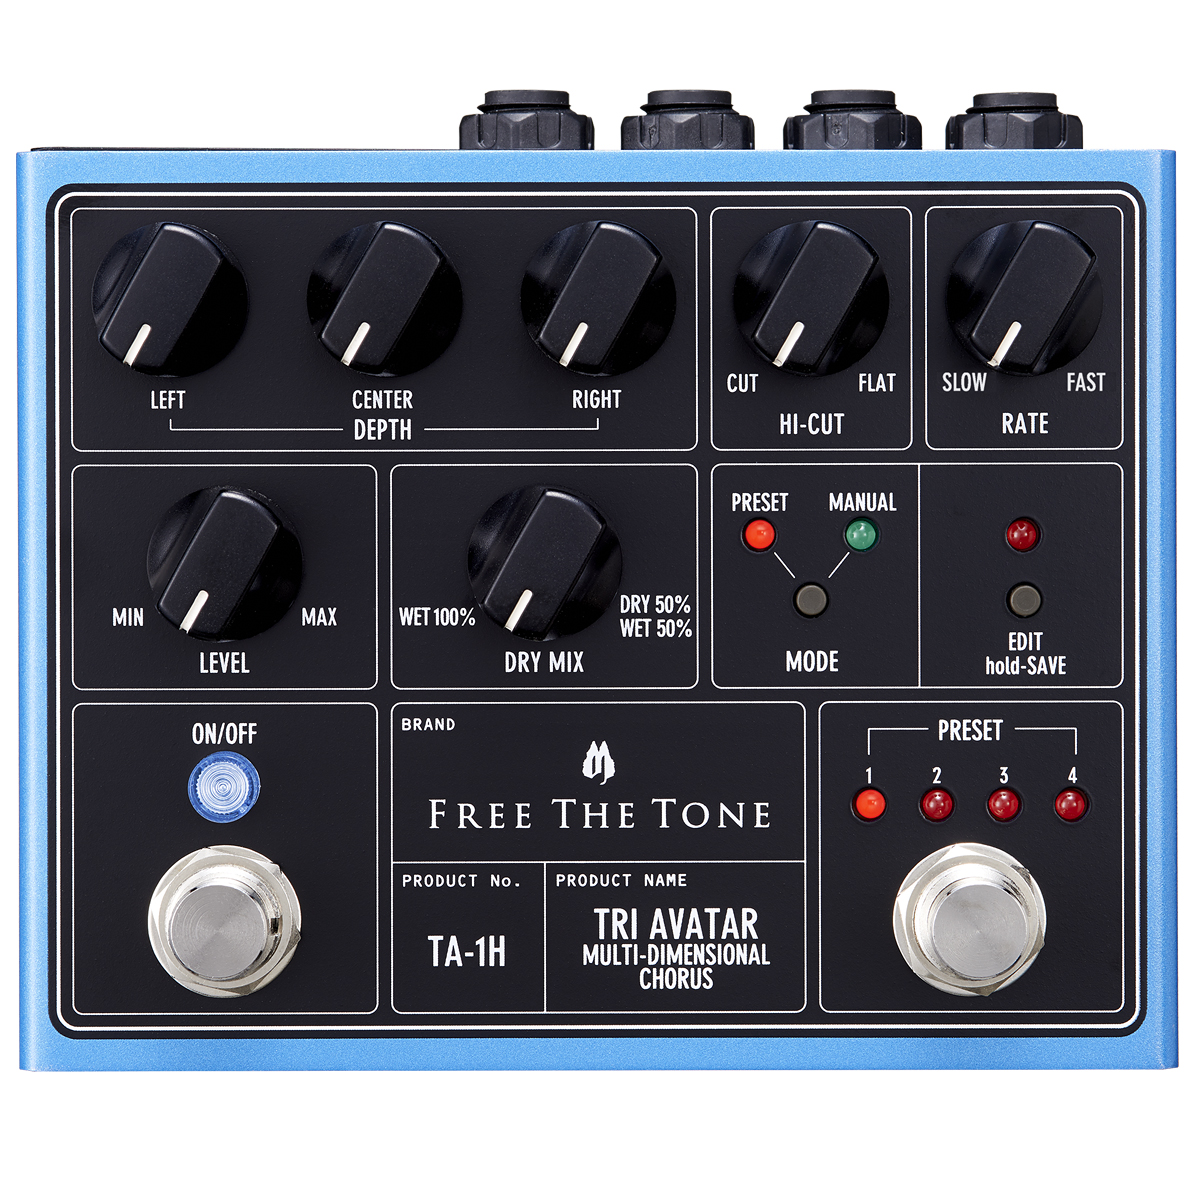 Free The Tone TA-1H TRI AVATAR Multi-Dimensional Chorus 新品 コーラス[フリーザトーン][Chorus][エフェクター,Effector]